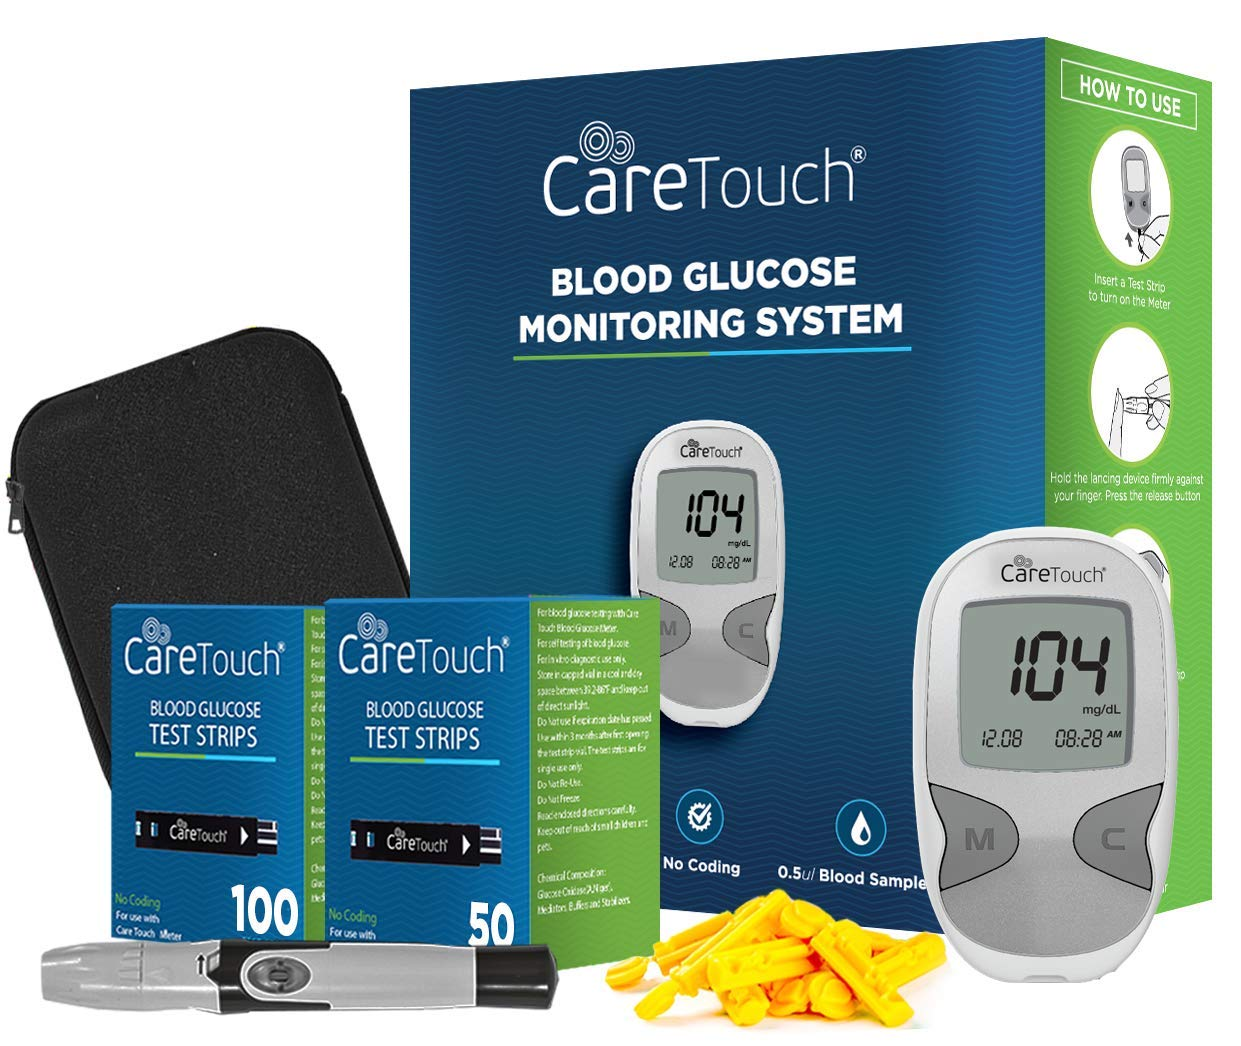 Amazon.com: Care Touch Diabetes Testing Kit – Care Touch Blood Glucose  Meter, 150 Blood Test Strips, 1 Lancing Device, 30 Gauge Lancets-with  Carrying Case: ...